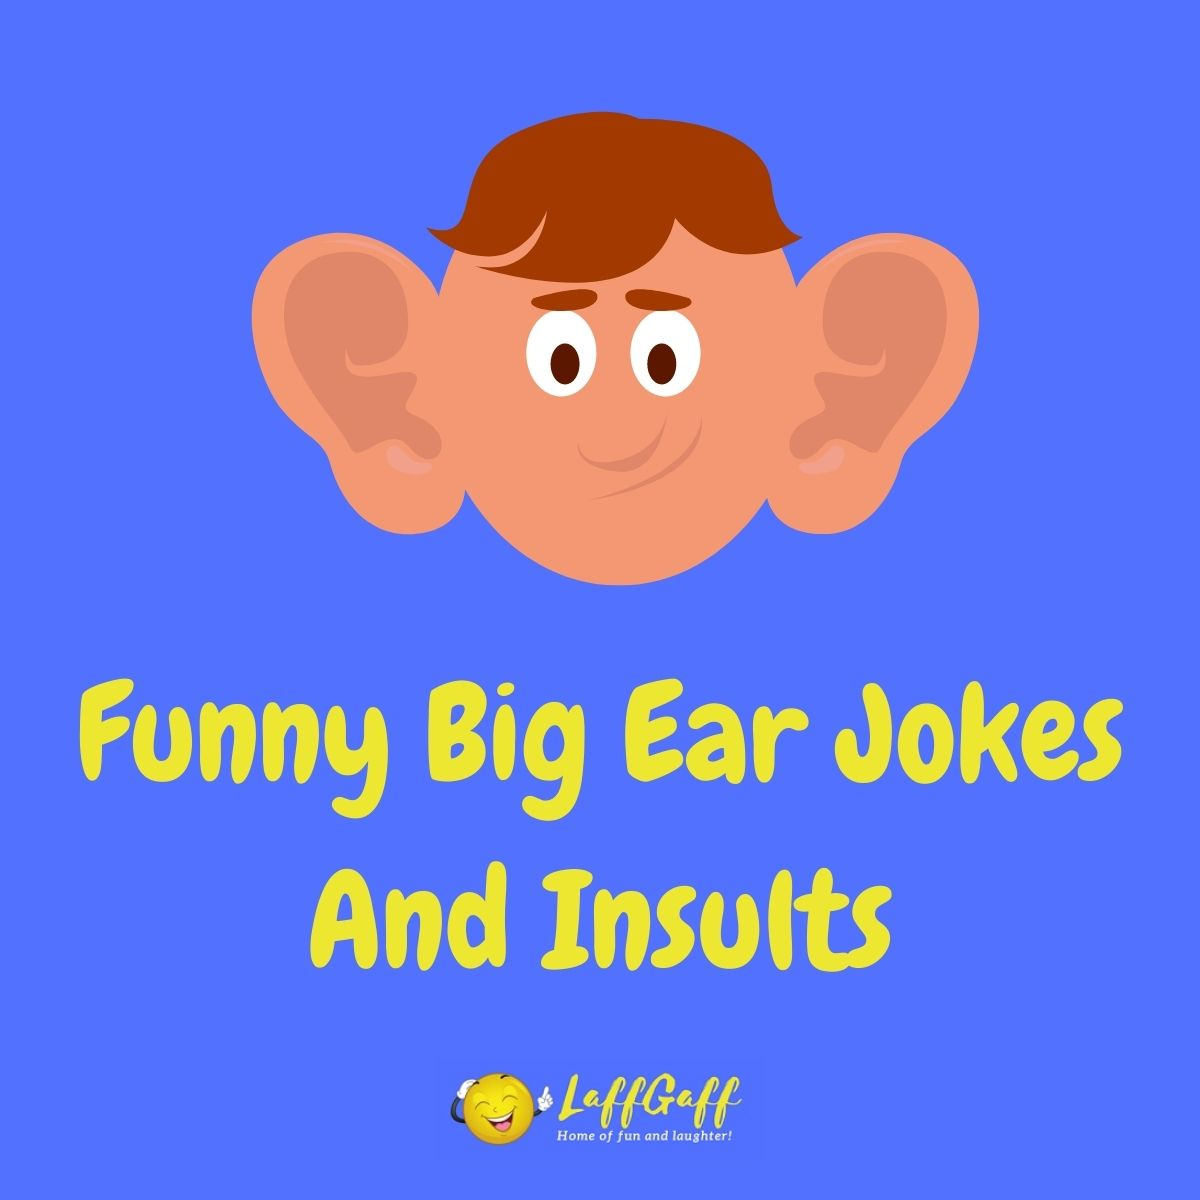 Featured image for a page of funny big ear jokes and insults.